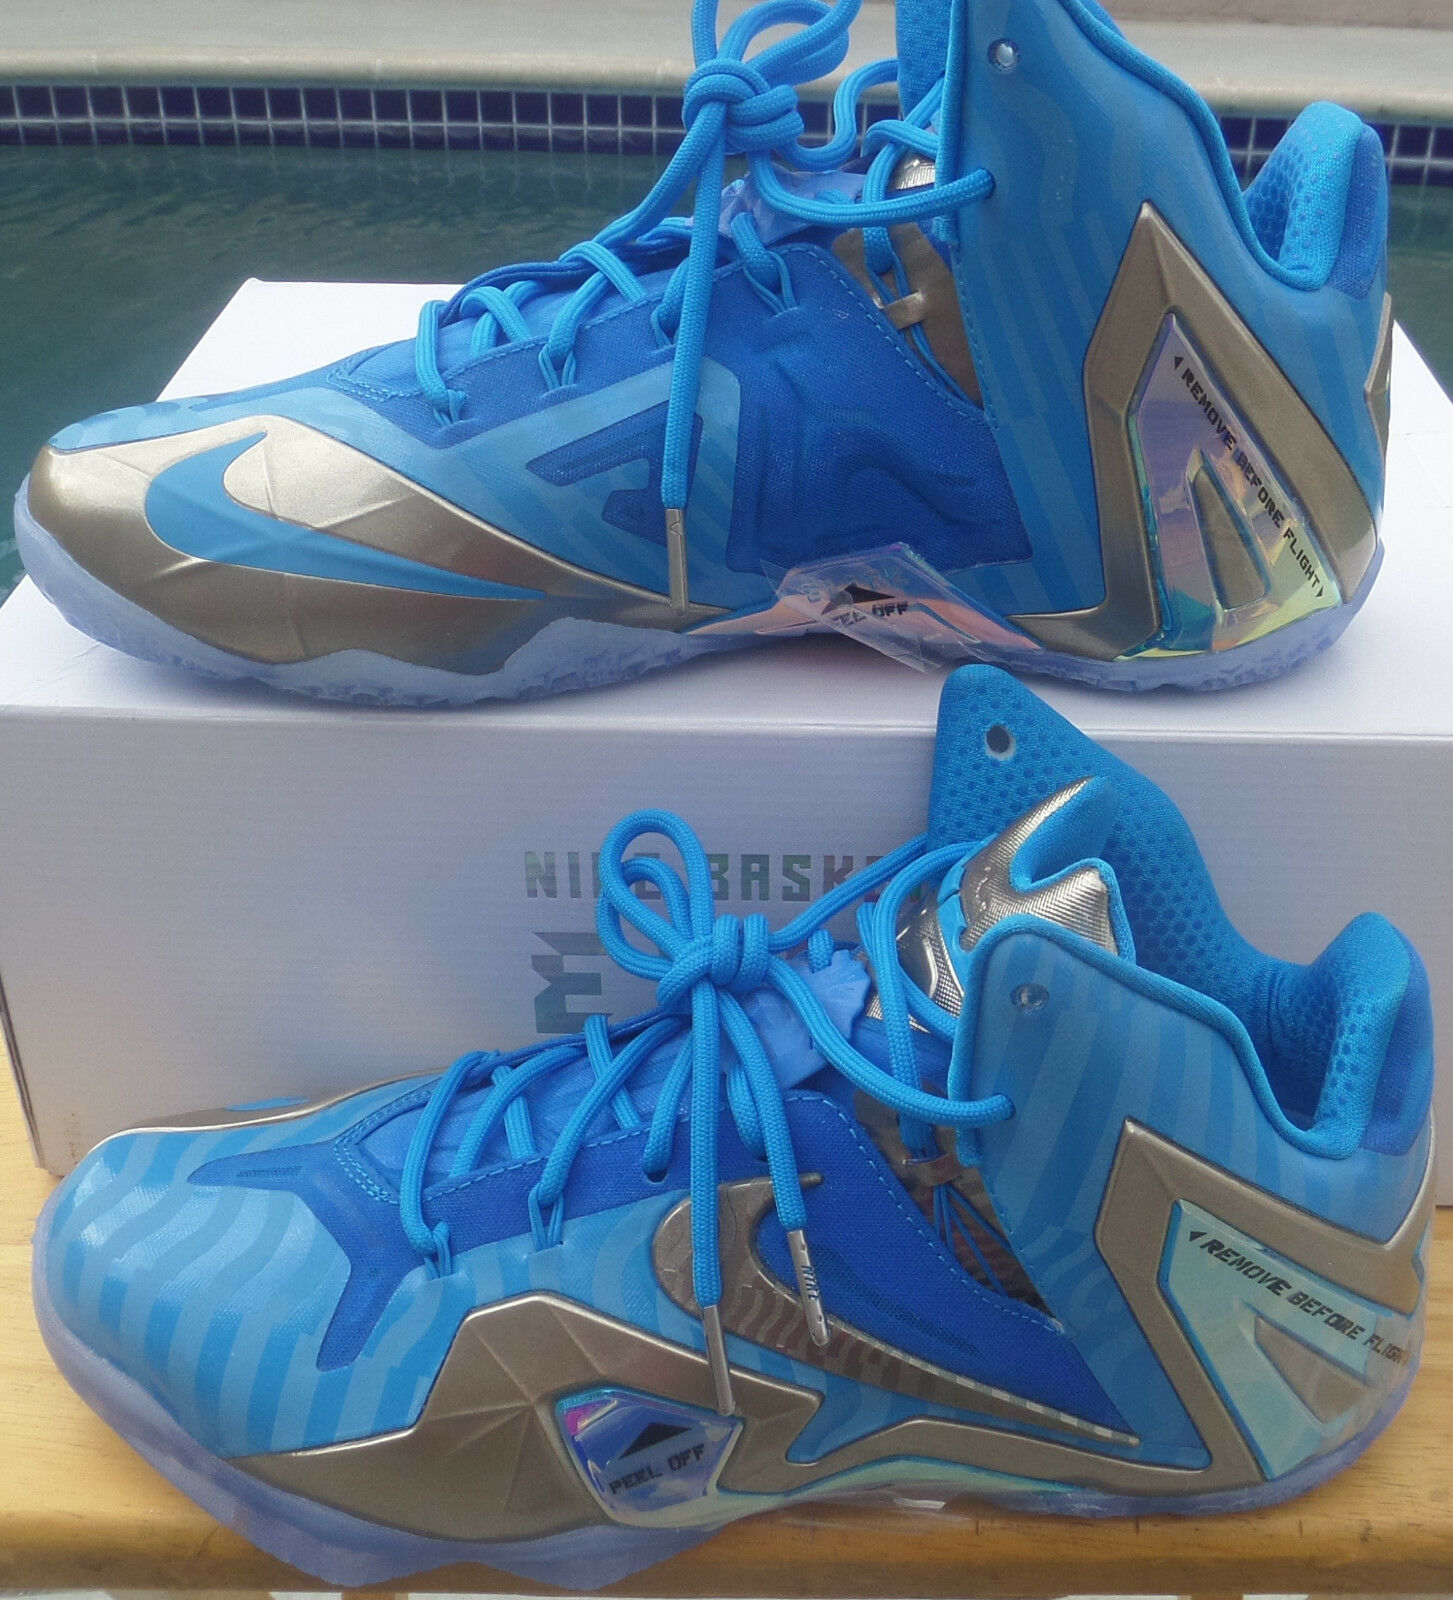 100%AUTHC: NIKE MEN'S SHOES LEBRON X1 ELITE COLLECT BLUE-HERO/METALLIC ZINC-ICE best-selling model of the brand